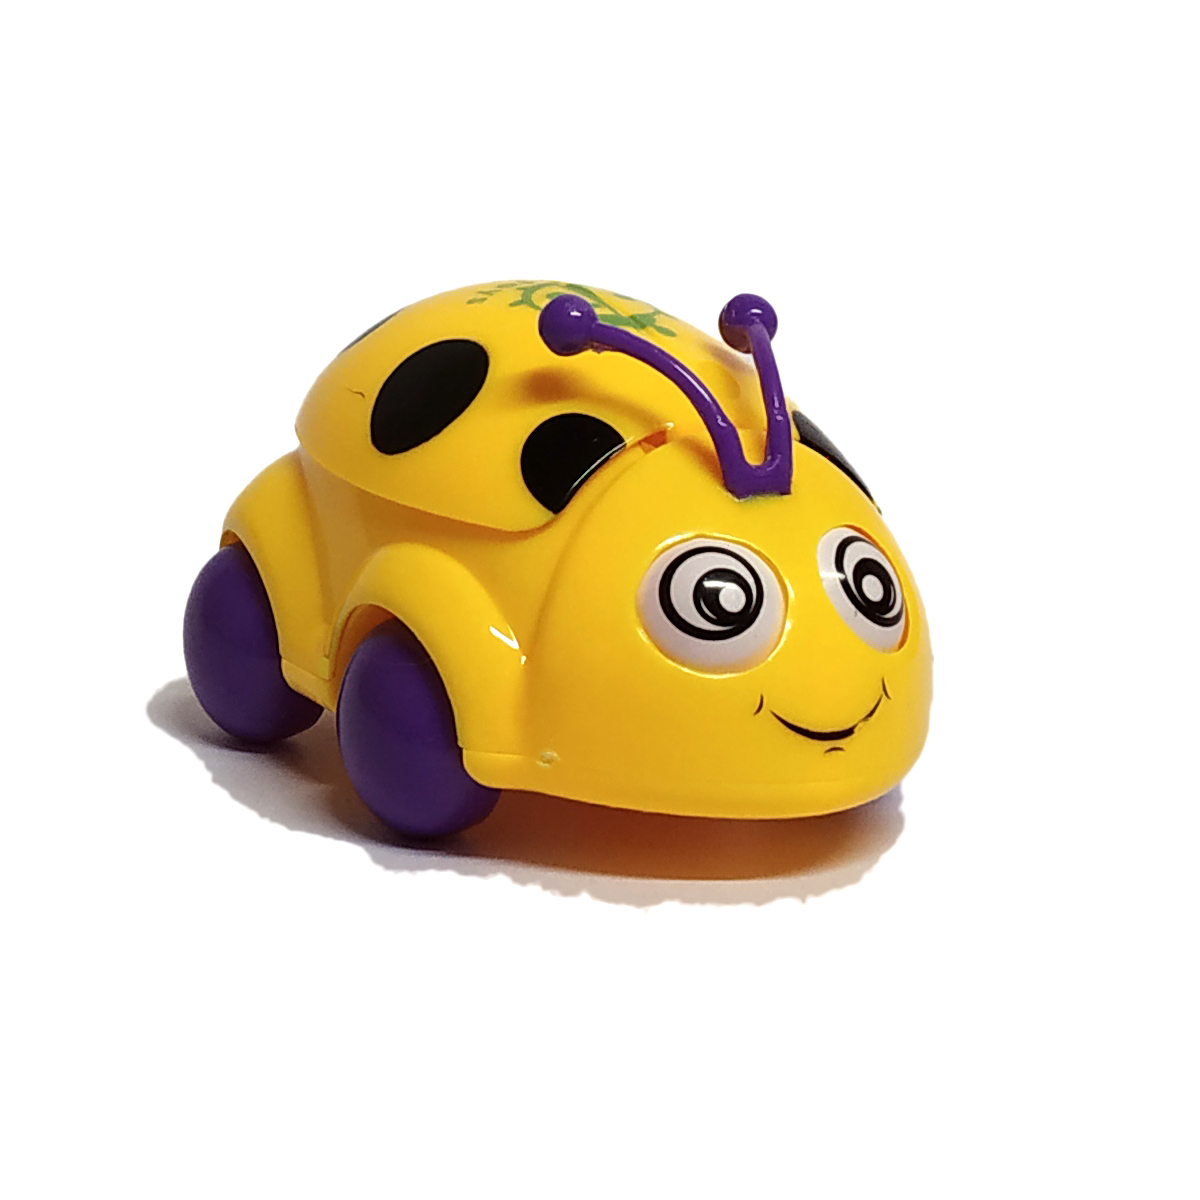 Car Beetle Funny Toys - Yellow